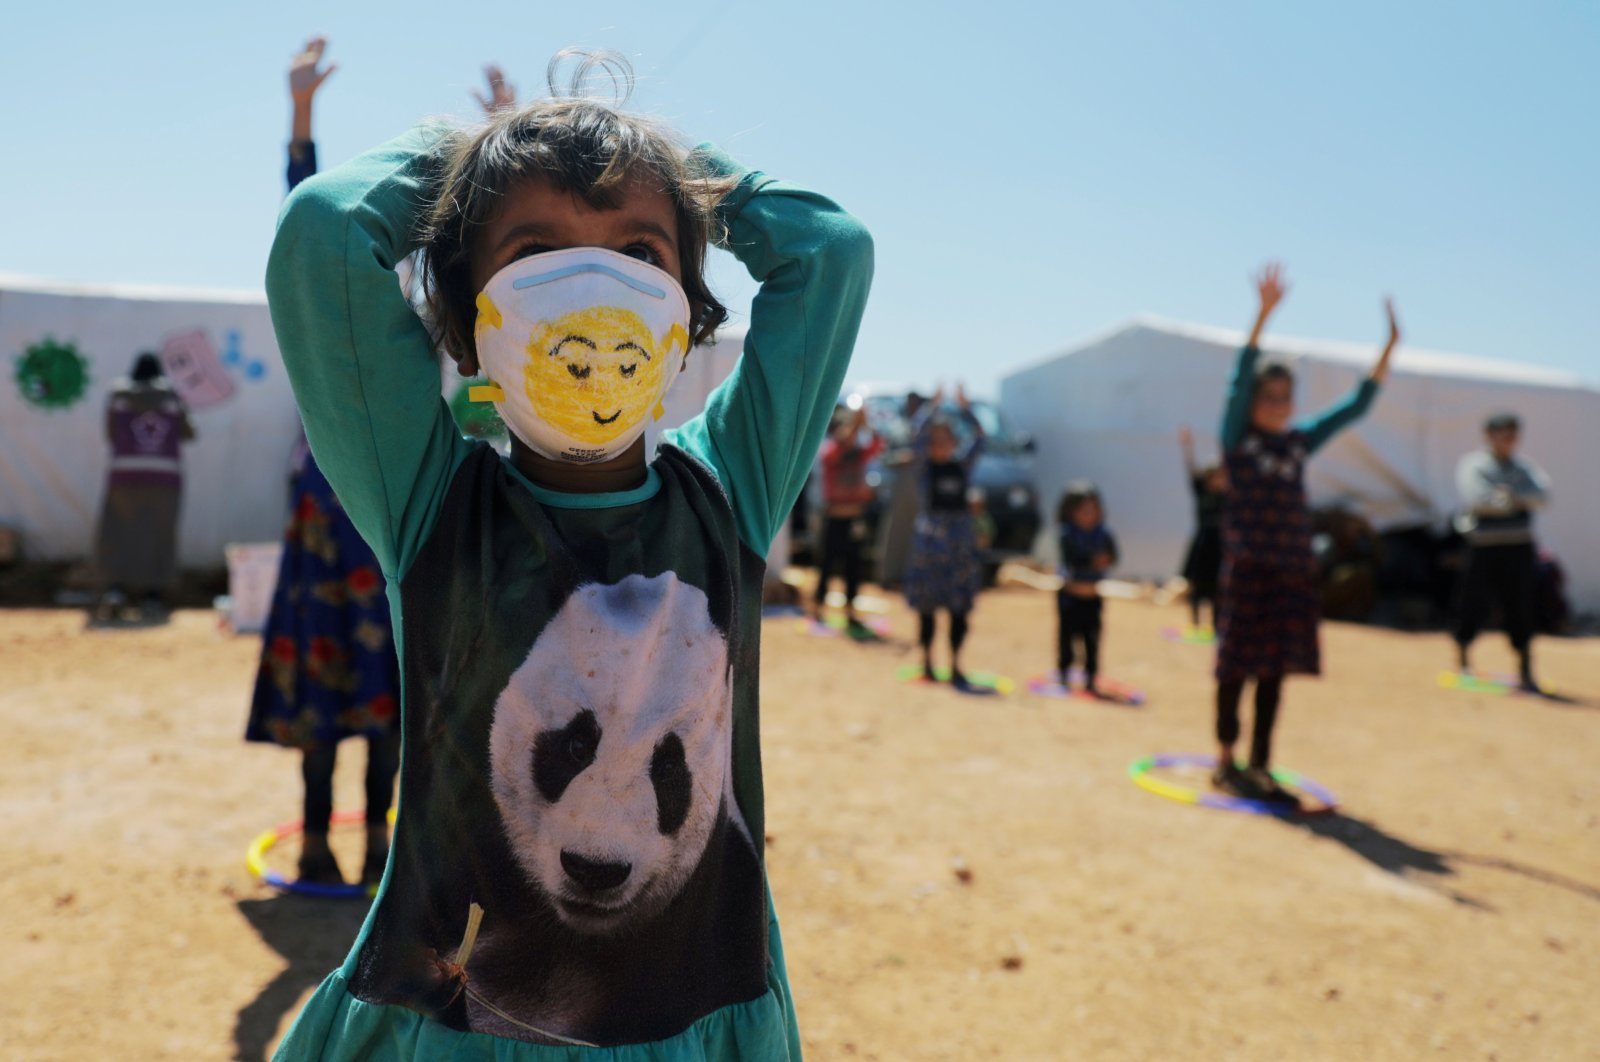 A displaced girl wears a face mask as she takes part in an event organzied by Violet Organization, in an effort to spread awareness and encourage safety amid coronavirus disease (COVID-19) fears, at a camp in the town of Maarat Masrin in northern Idlib, Syria, Tuesday, April 14, 2020. (REUTERS)